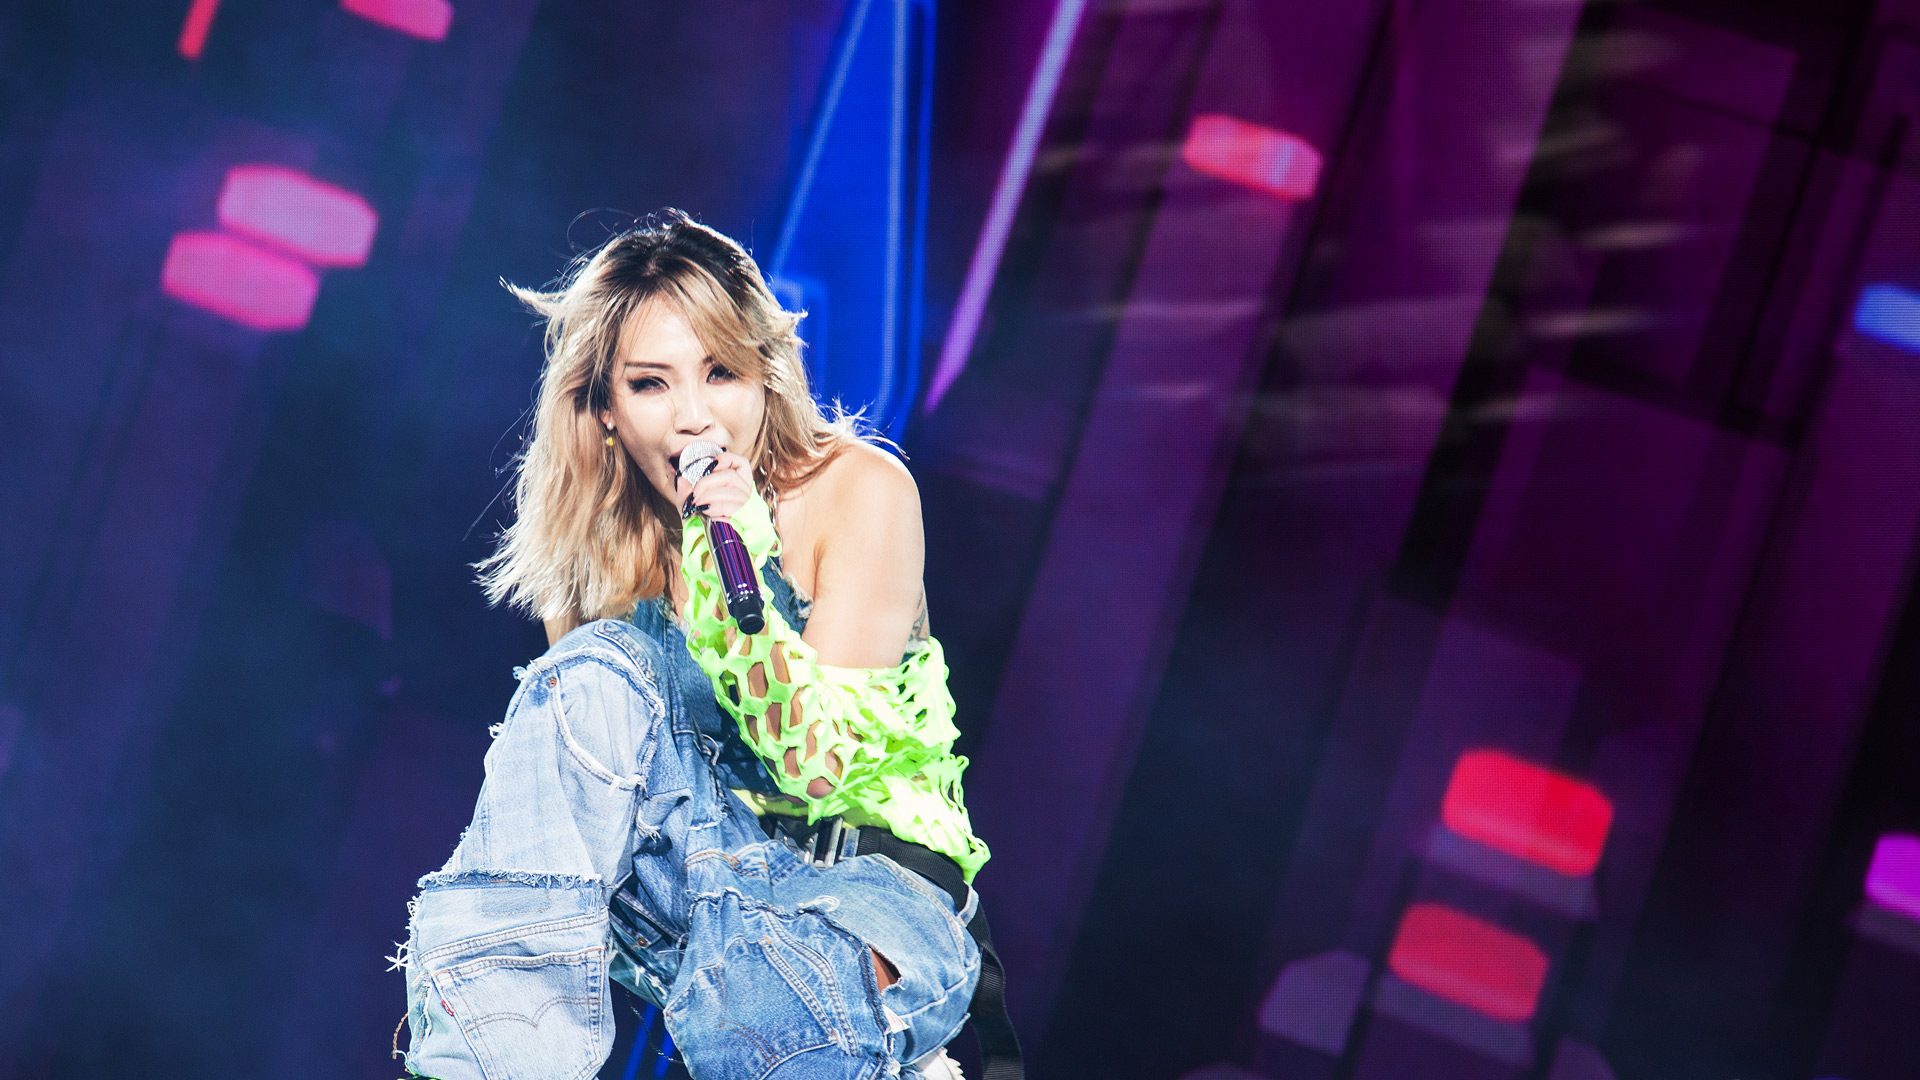 The Korean artist CL kneels on stage and sings.